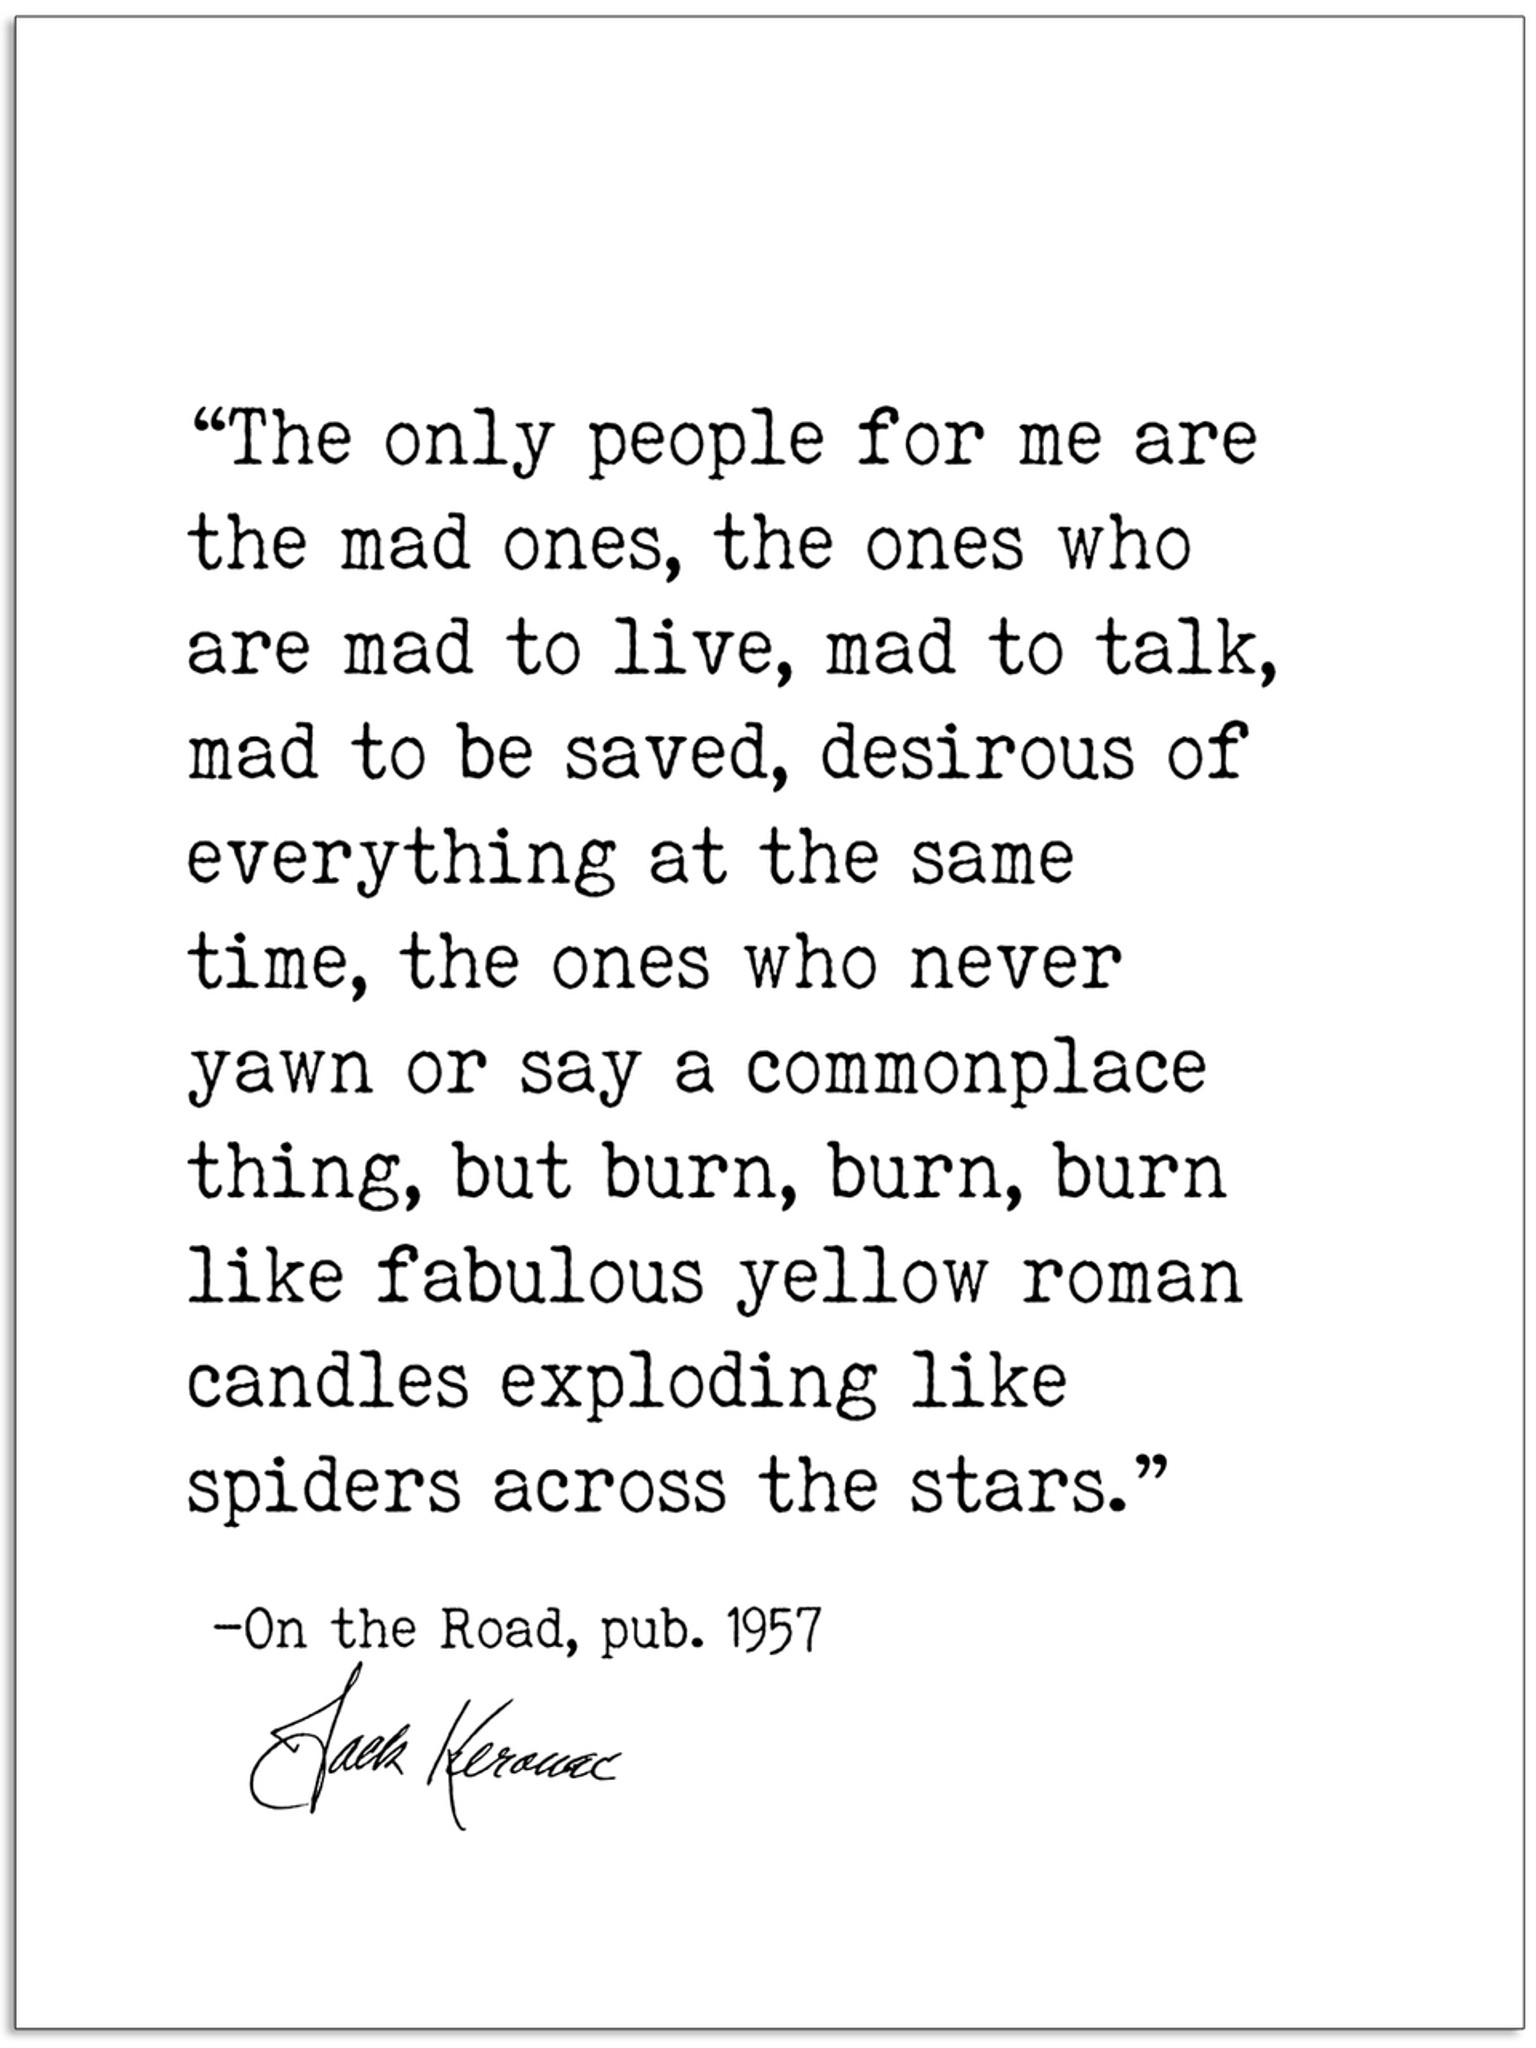 The Only People for Me Are the Mad Ones - Jack Kerouac, On the Road, Author  Signature Literary Quote Print. Fine Art Paper, Laminated, or Framed. ...